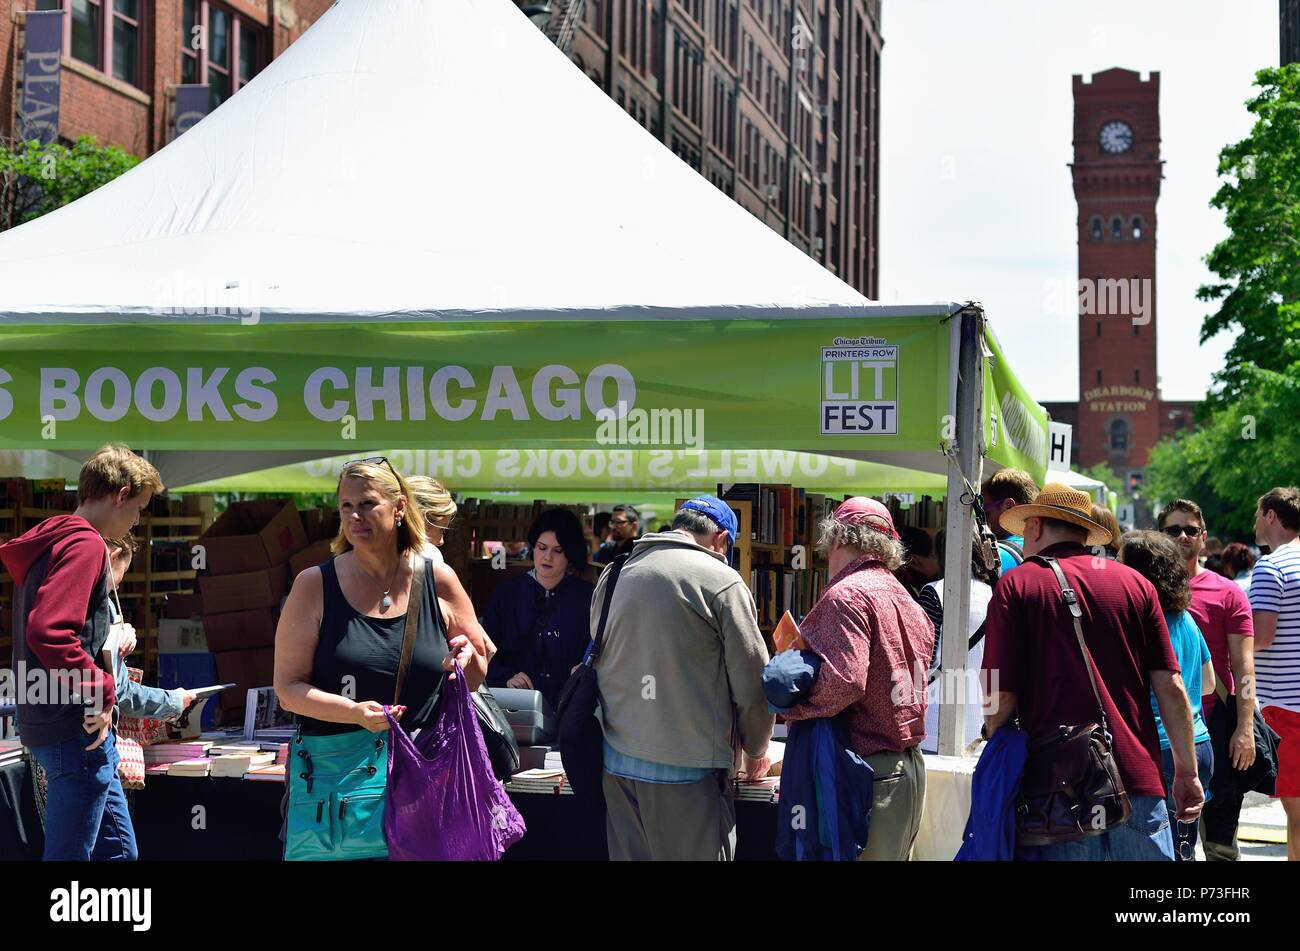 Chicago, Illinois, USA. People mingle among the stalls at the annual Printers Row Lit Fest (formerly Printers Row Book Fair). - Stock Image